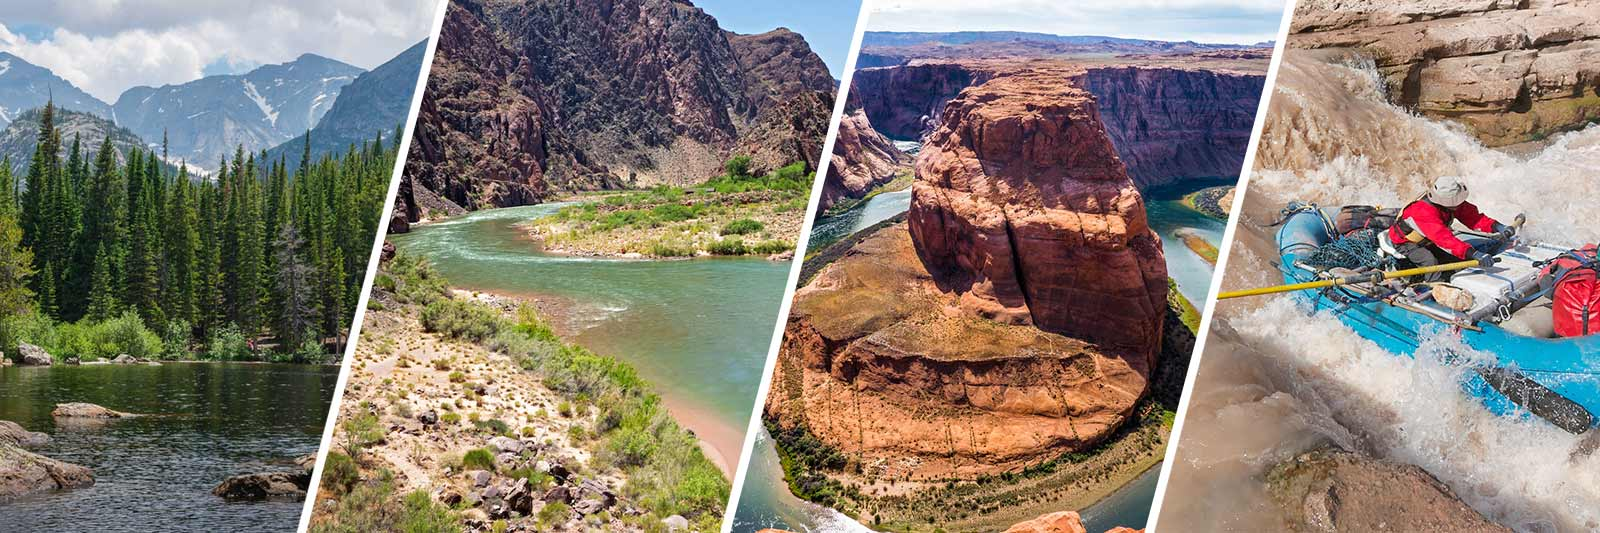 The Colorado River takes many forms during its 1450-mile journey across the West, from a meandering alpine stream to raging rapids.